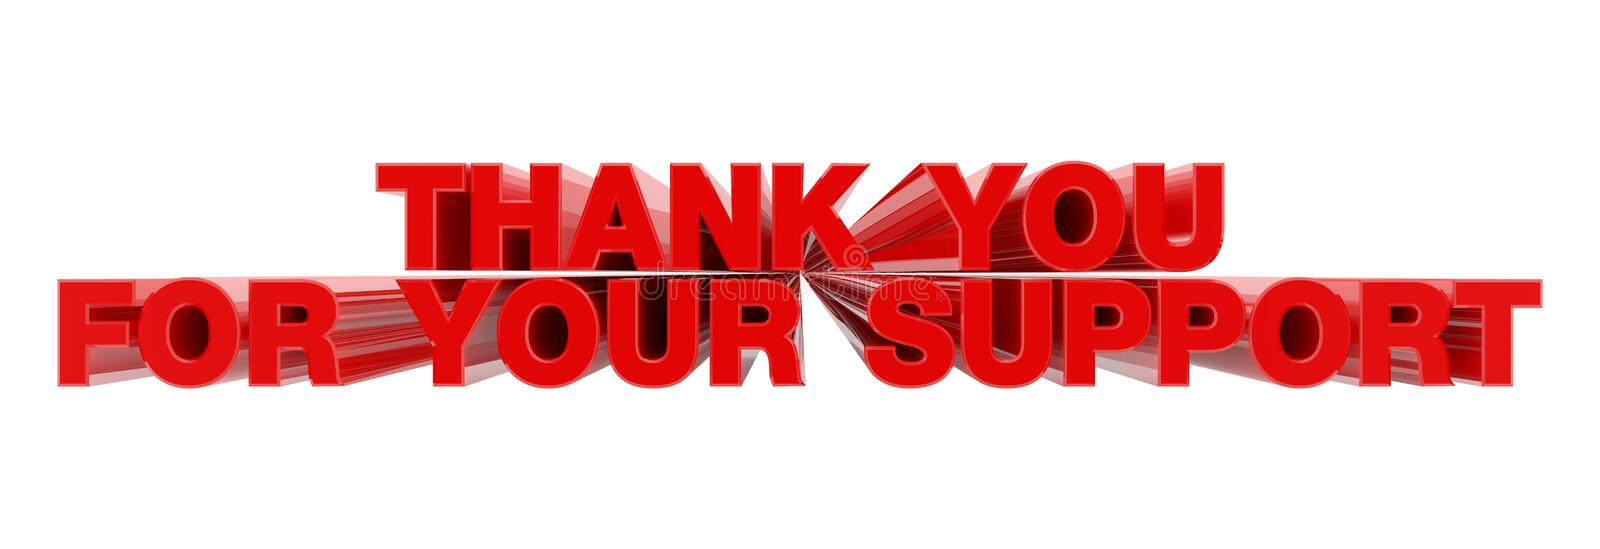 THANK YOU FOR YOUR SUPPORT red word on white background illustration 3D rendering royalty free illustration